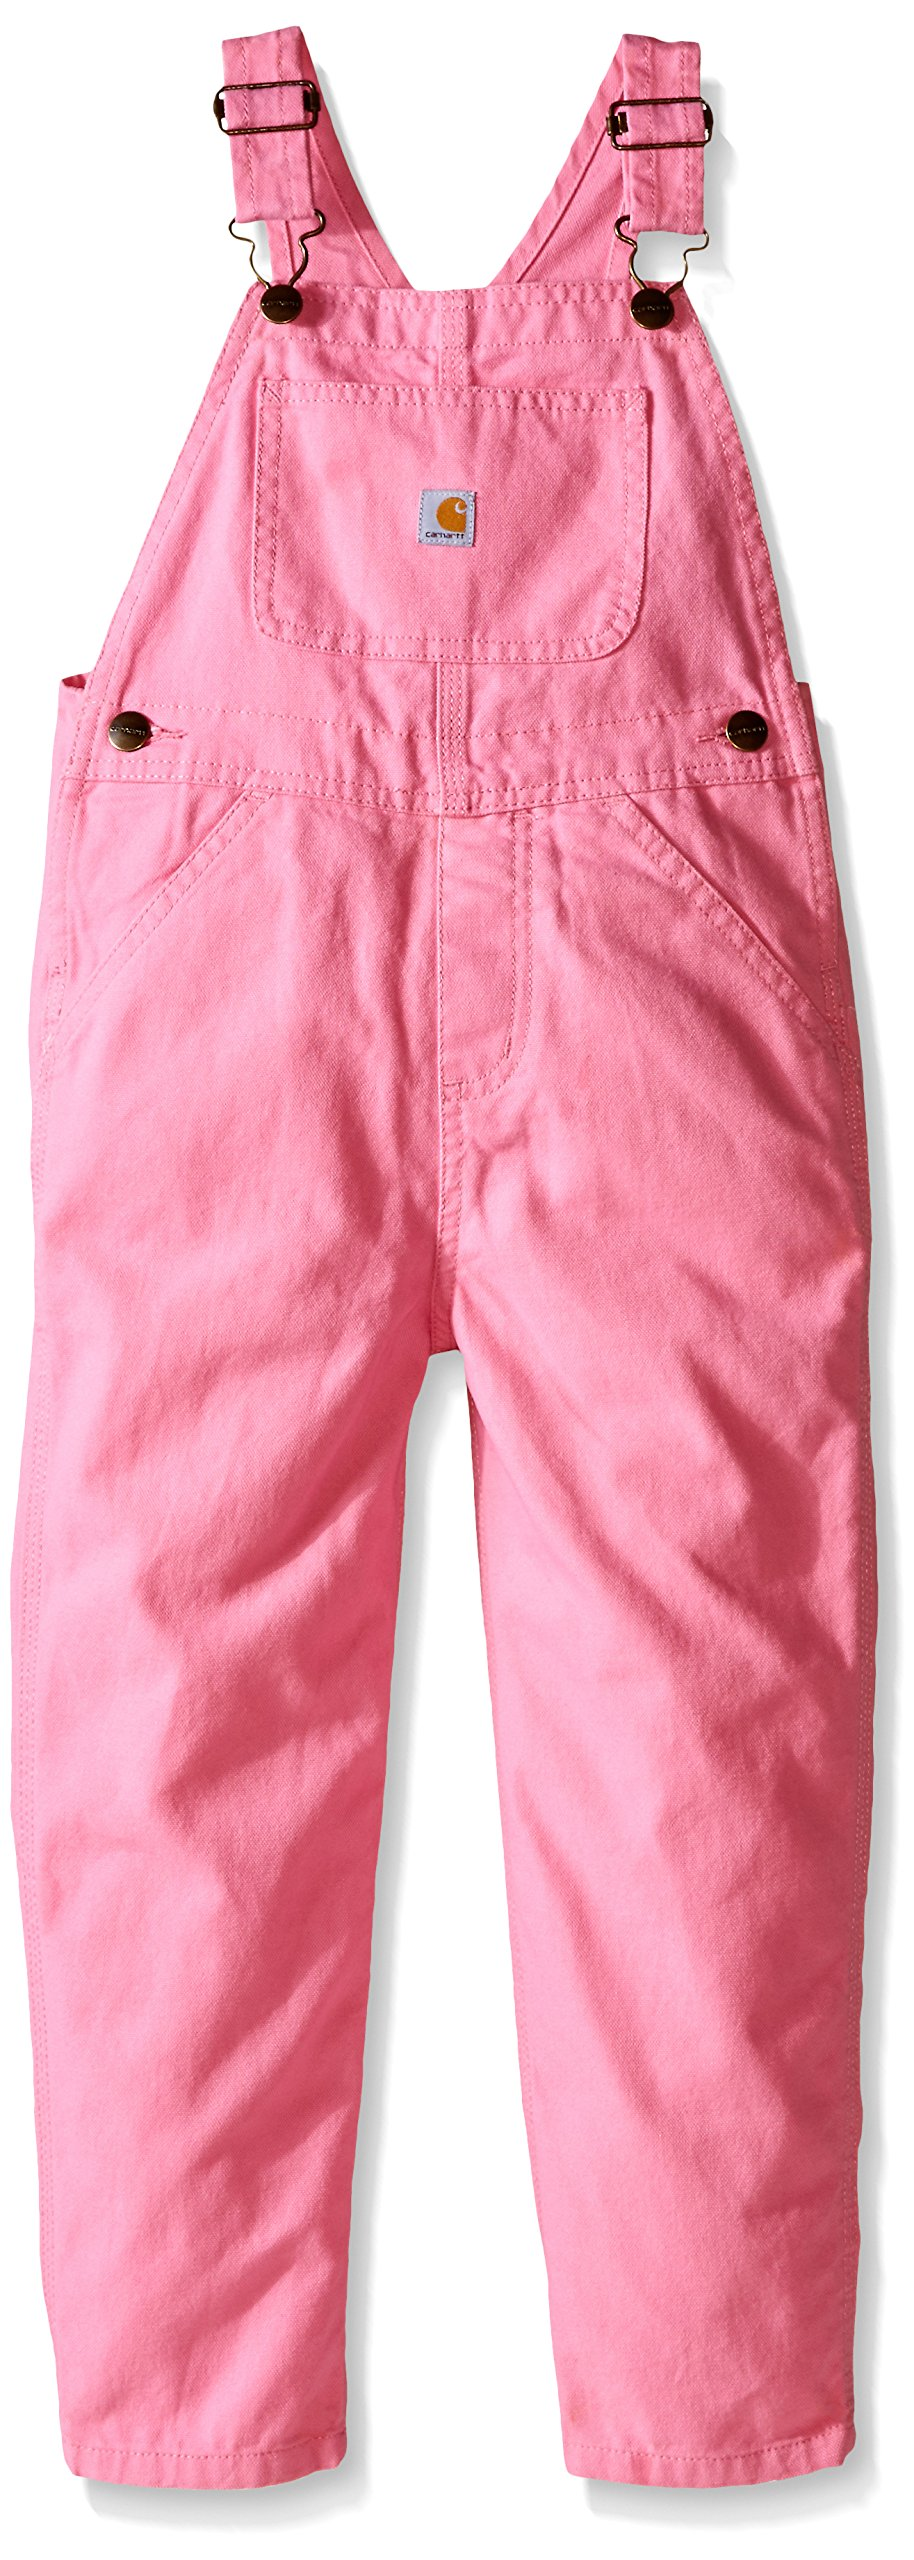 Carhartt Little Girls' Washed Microsanded Canvas Bib Overall Toddler, Pink, 3T